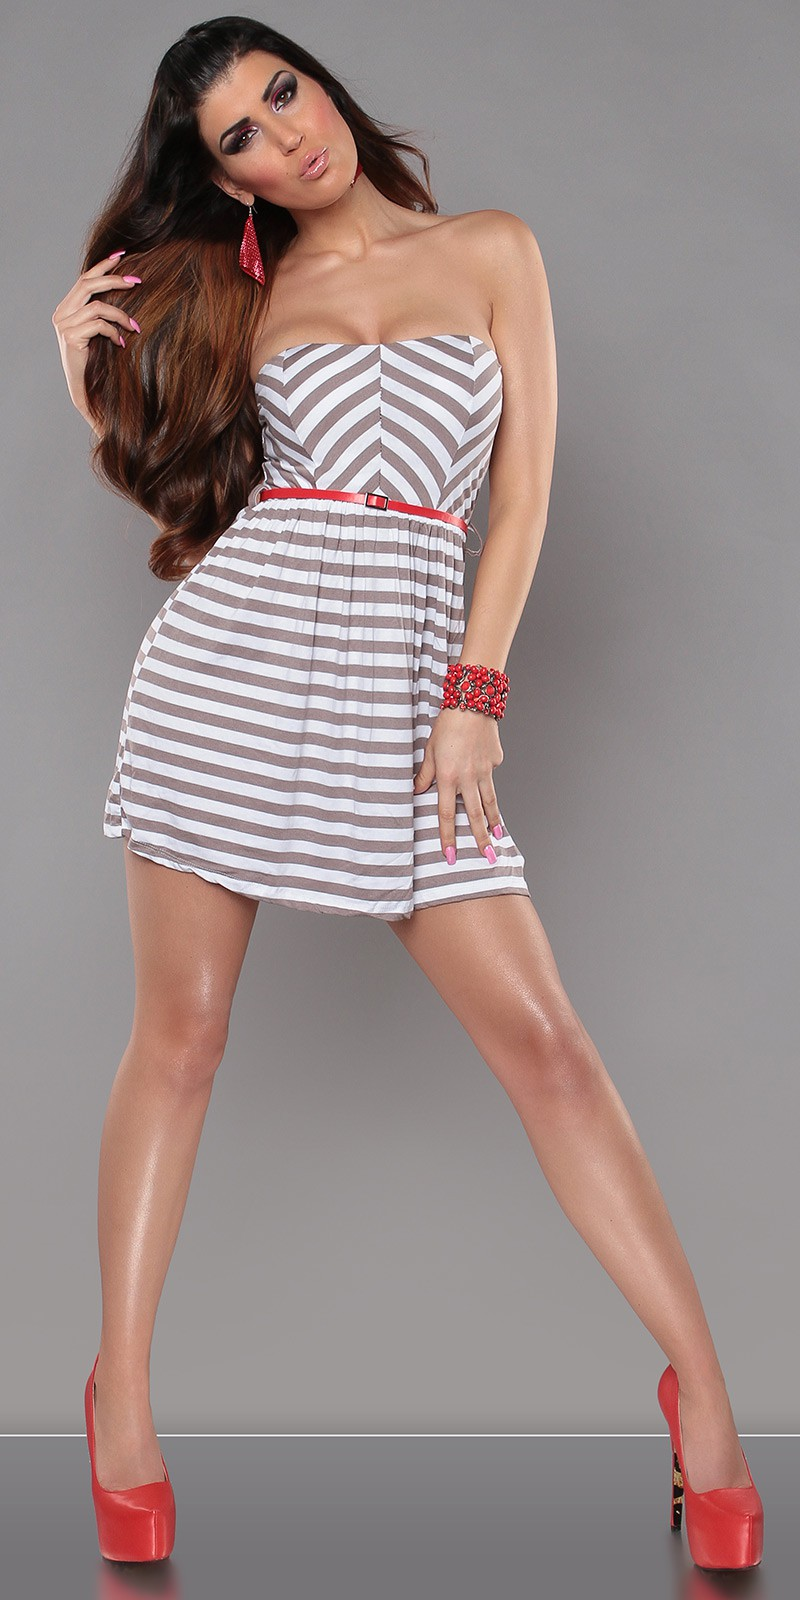 Brown Strapless Striped Dress With Red Belt